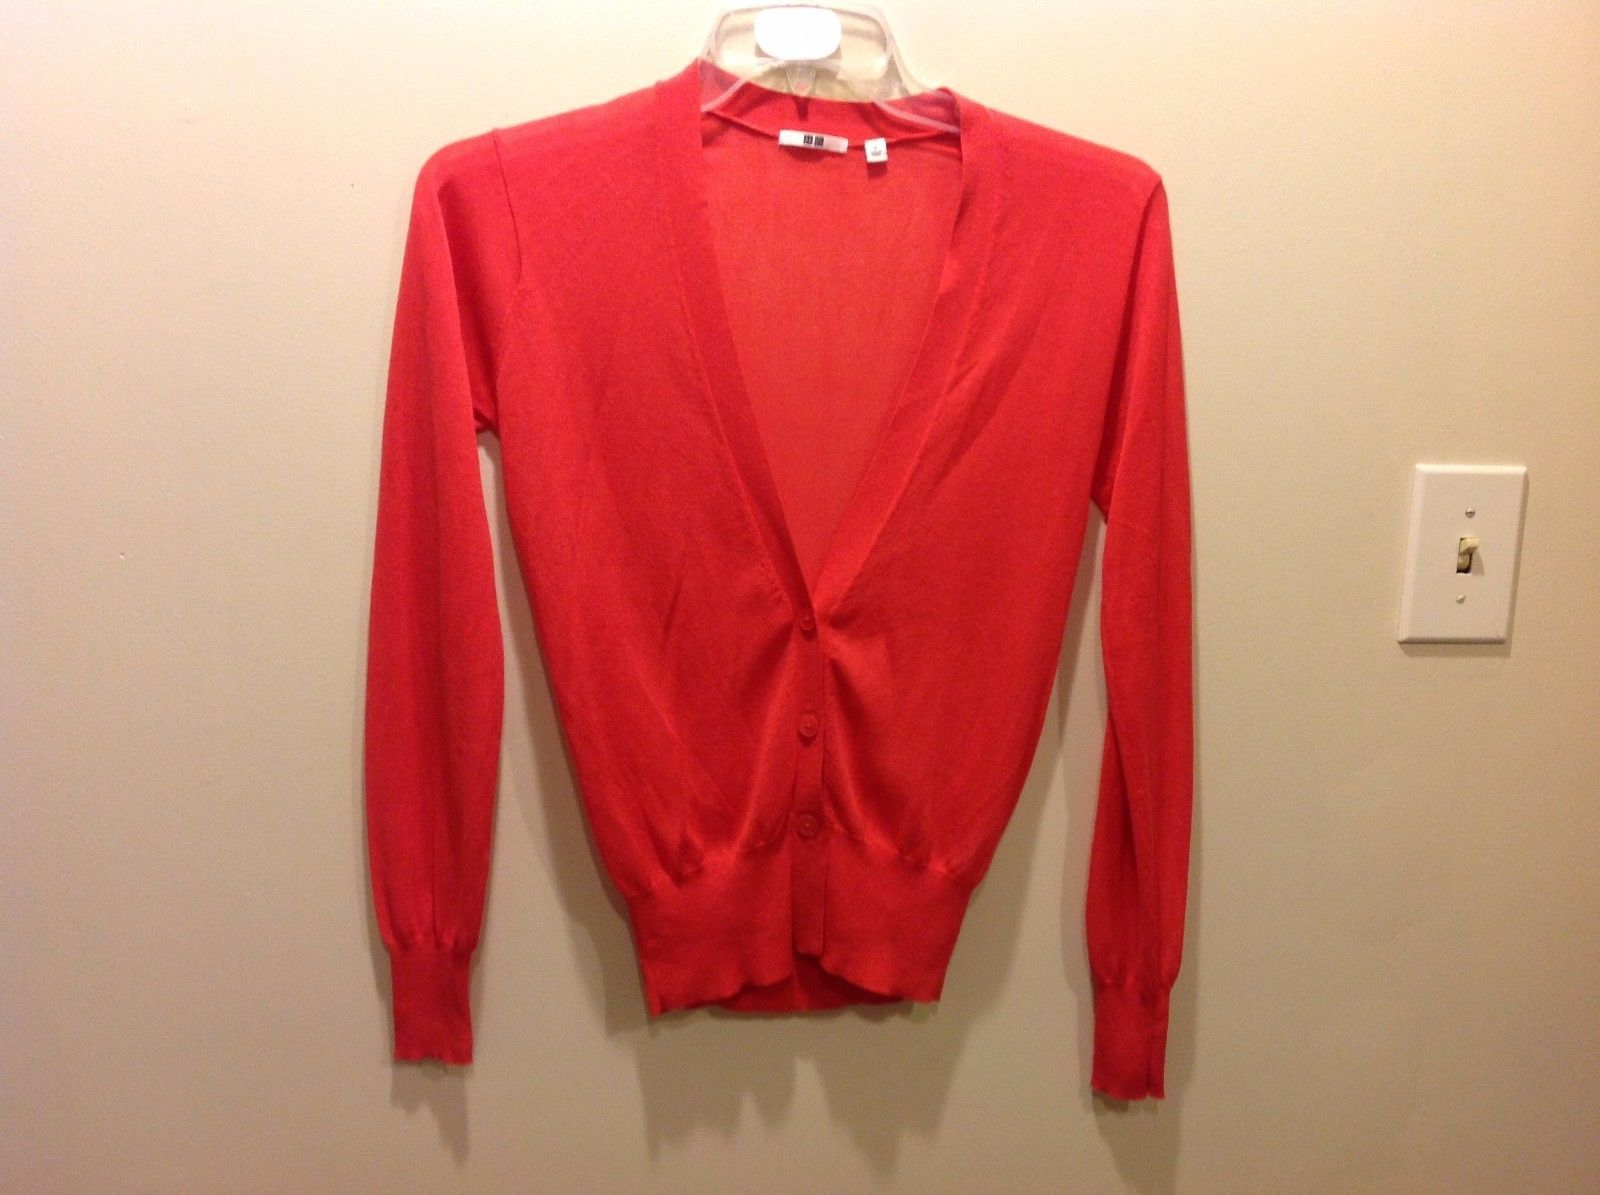 Used Good Condition UNI QLO Small Bright Neon Pink Cardigan V-Neck Semi-Sheer